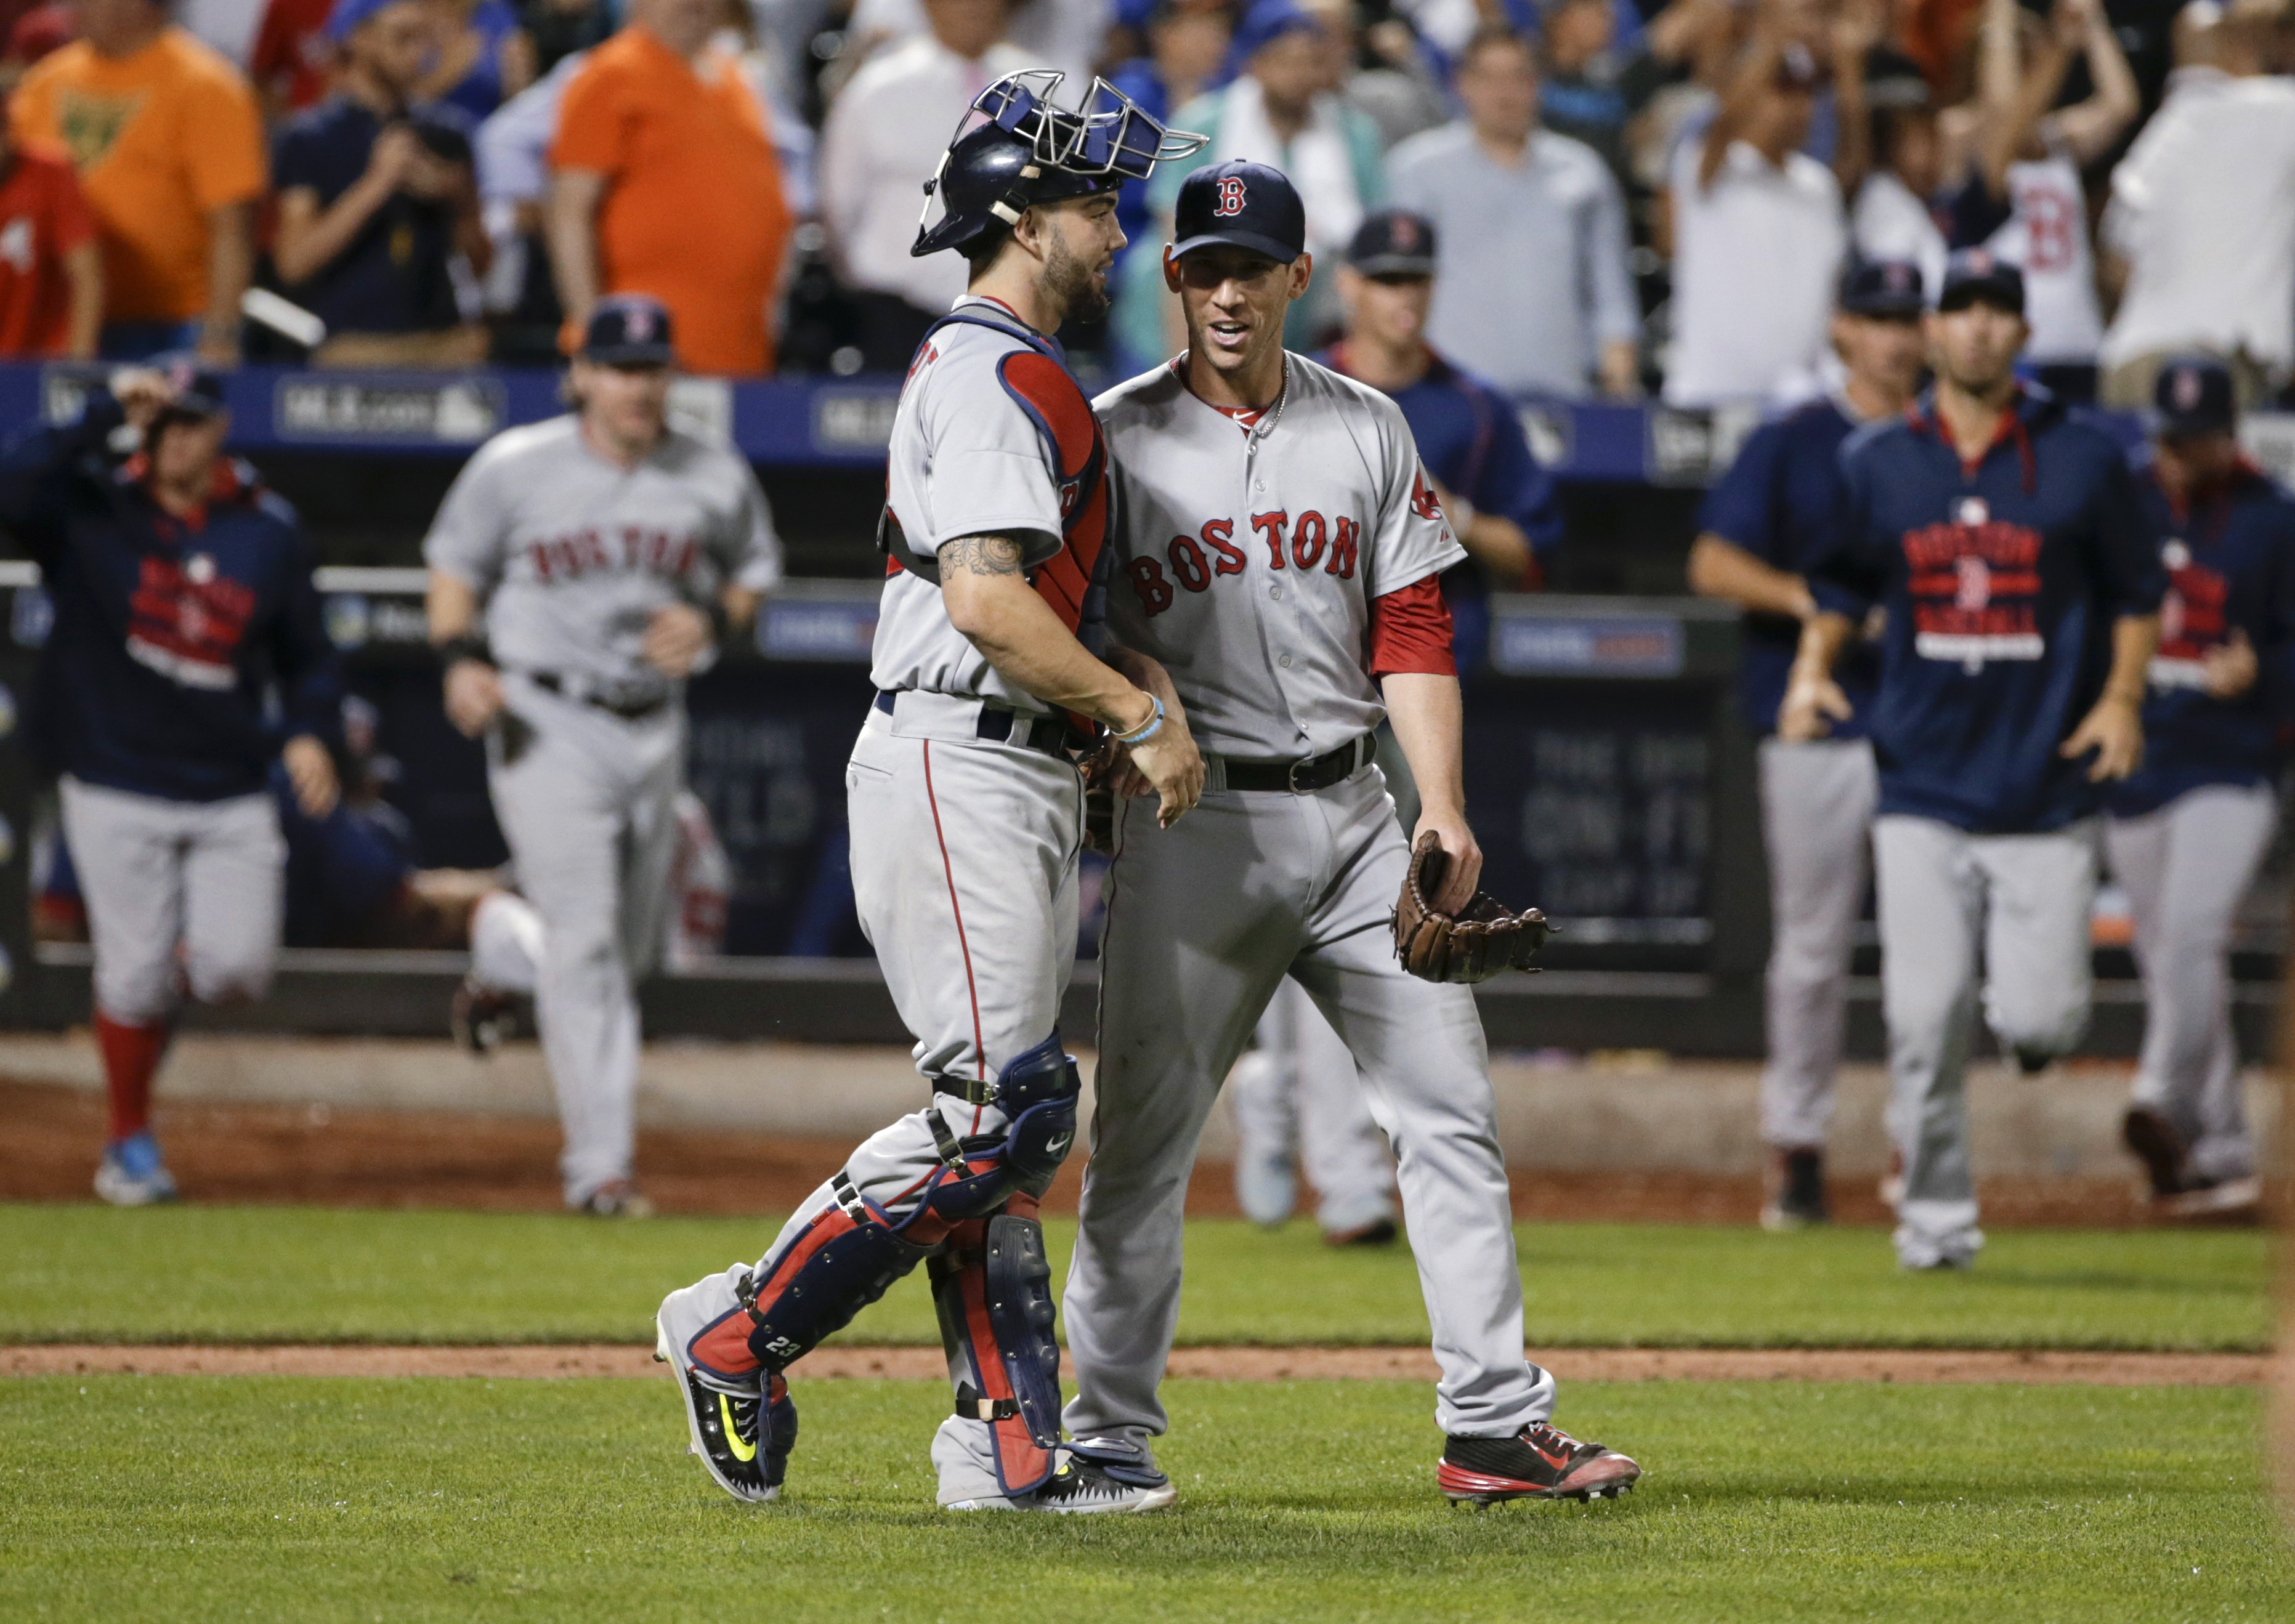 Boston Red Sox relief pitcher Jean Machi, right, and catcher Blake Swihart meet after the Red Sox defeated the New York Mets 6-4 in a baseball game Friday, Aug. 28, 2015, in New York. (AP Photo/Frank Franklin II)